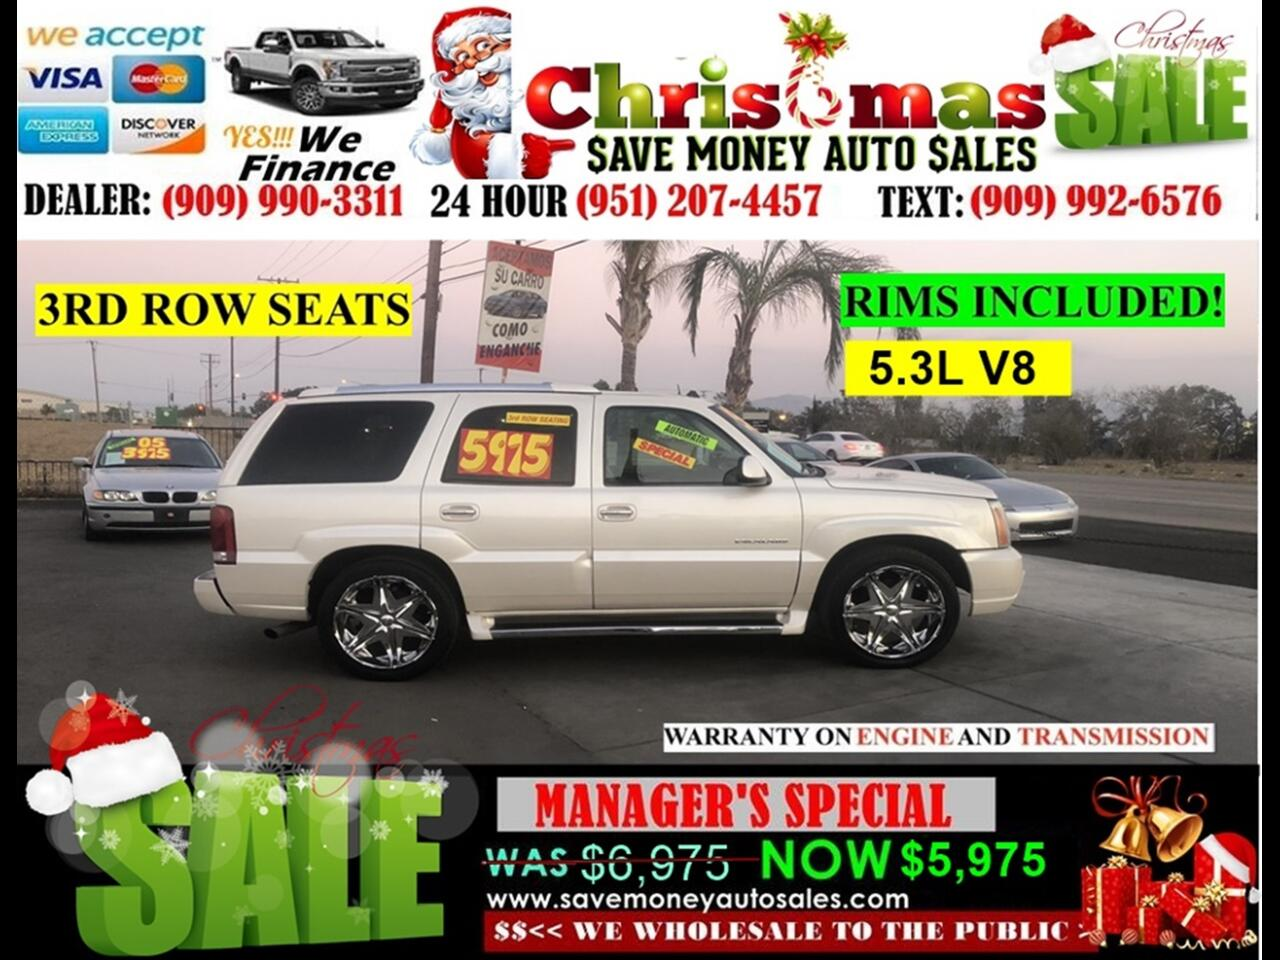 2003 Cadillac Escalade 2WD > 5.3L V8 > SCREEN ON SEAT, 3RD ROW SEAT >